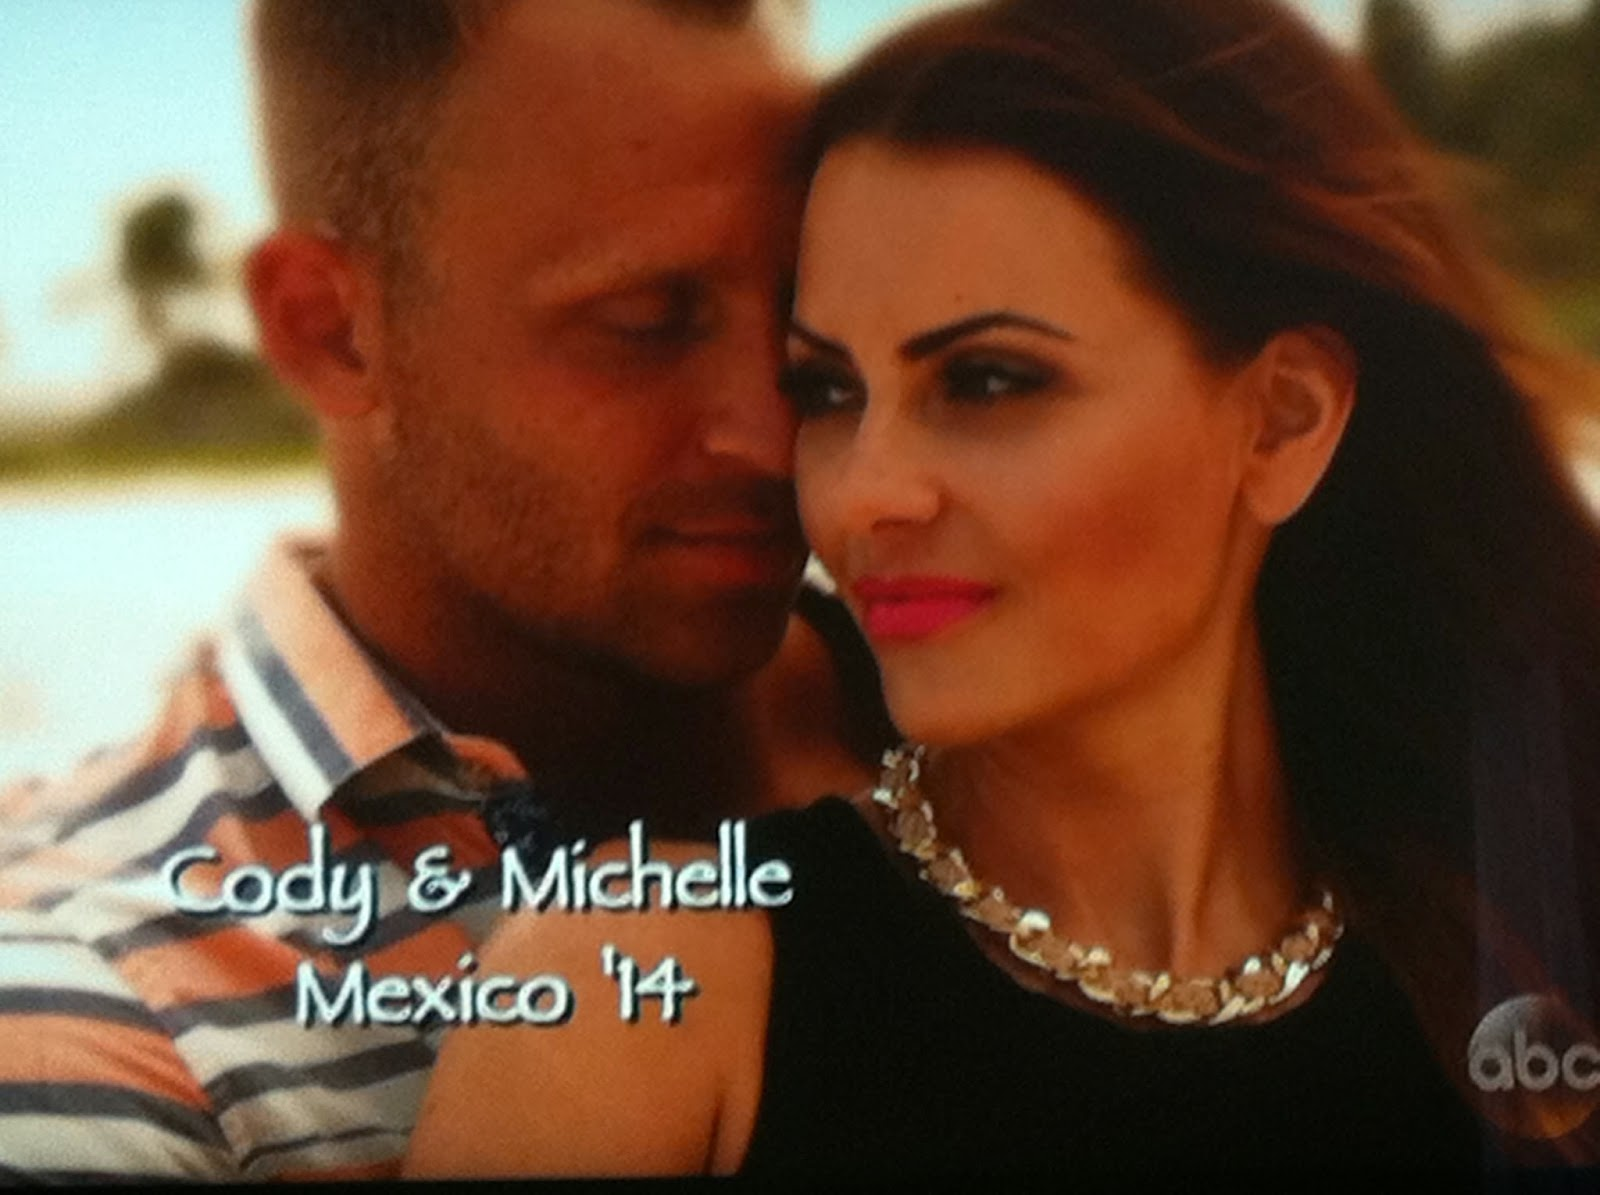 cody and michelle dating